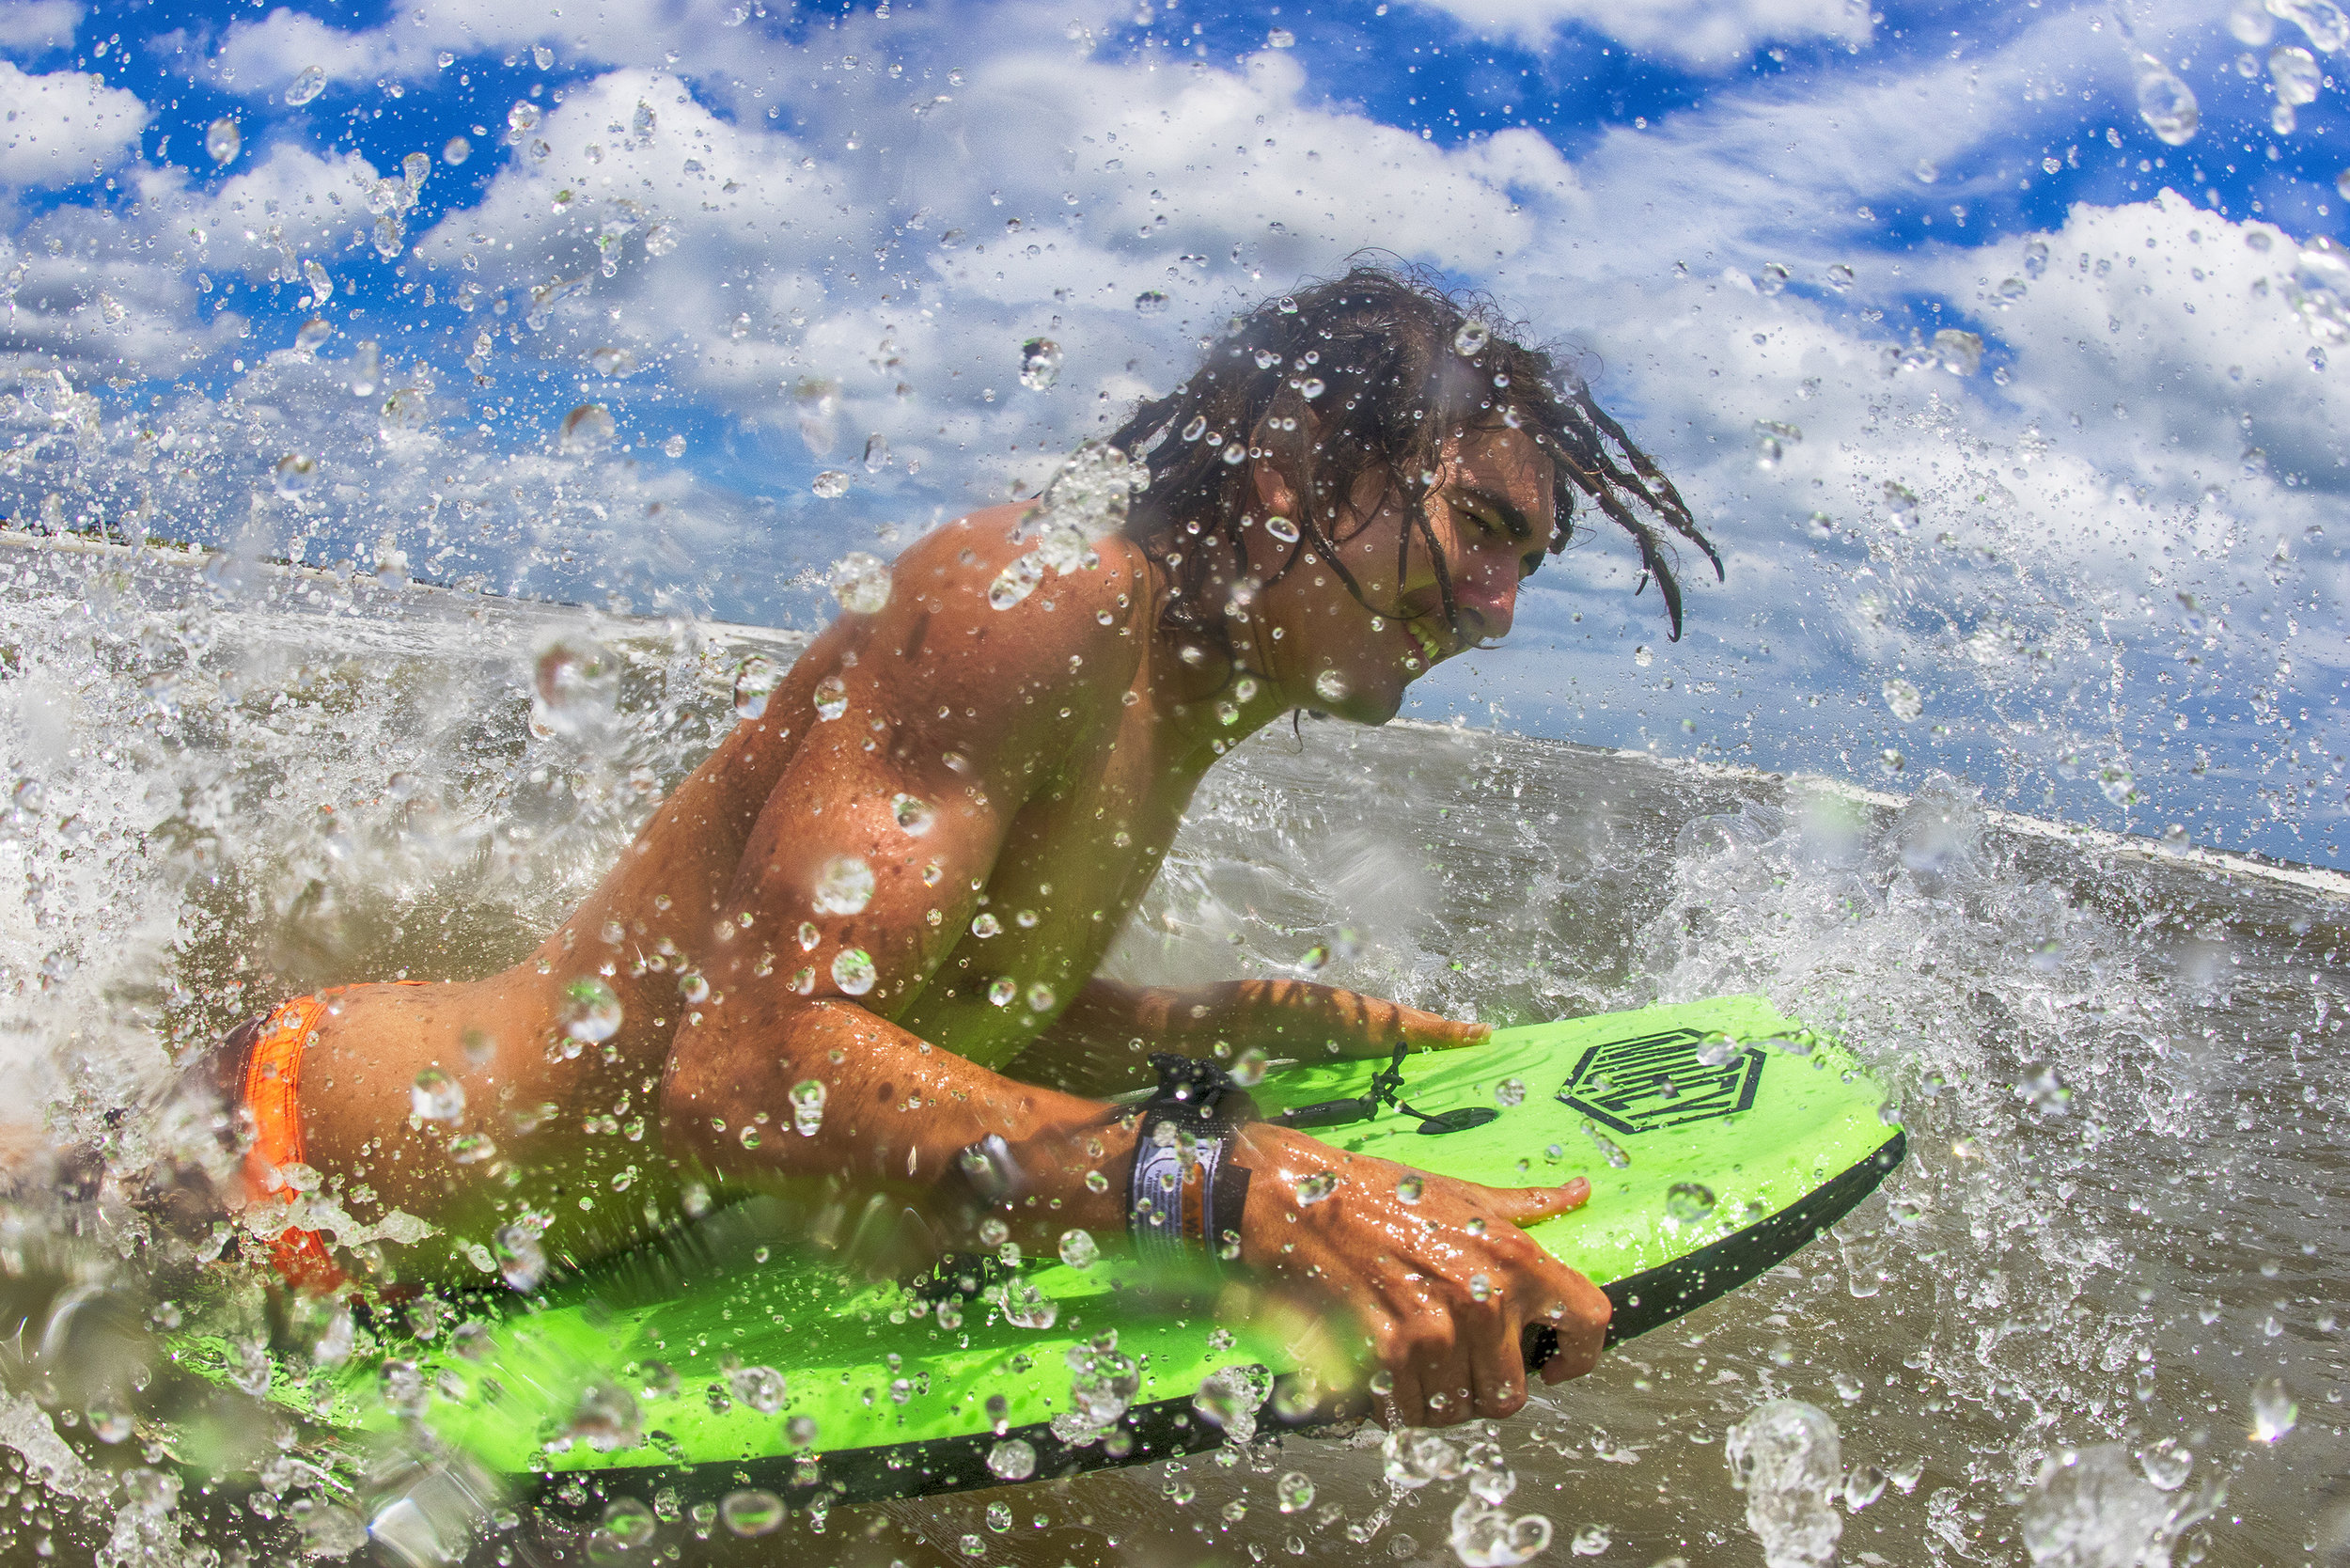 Blaze playing in the shorepound on the Boogie Board, dreadlocks and all.